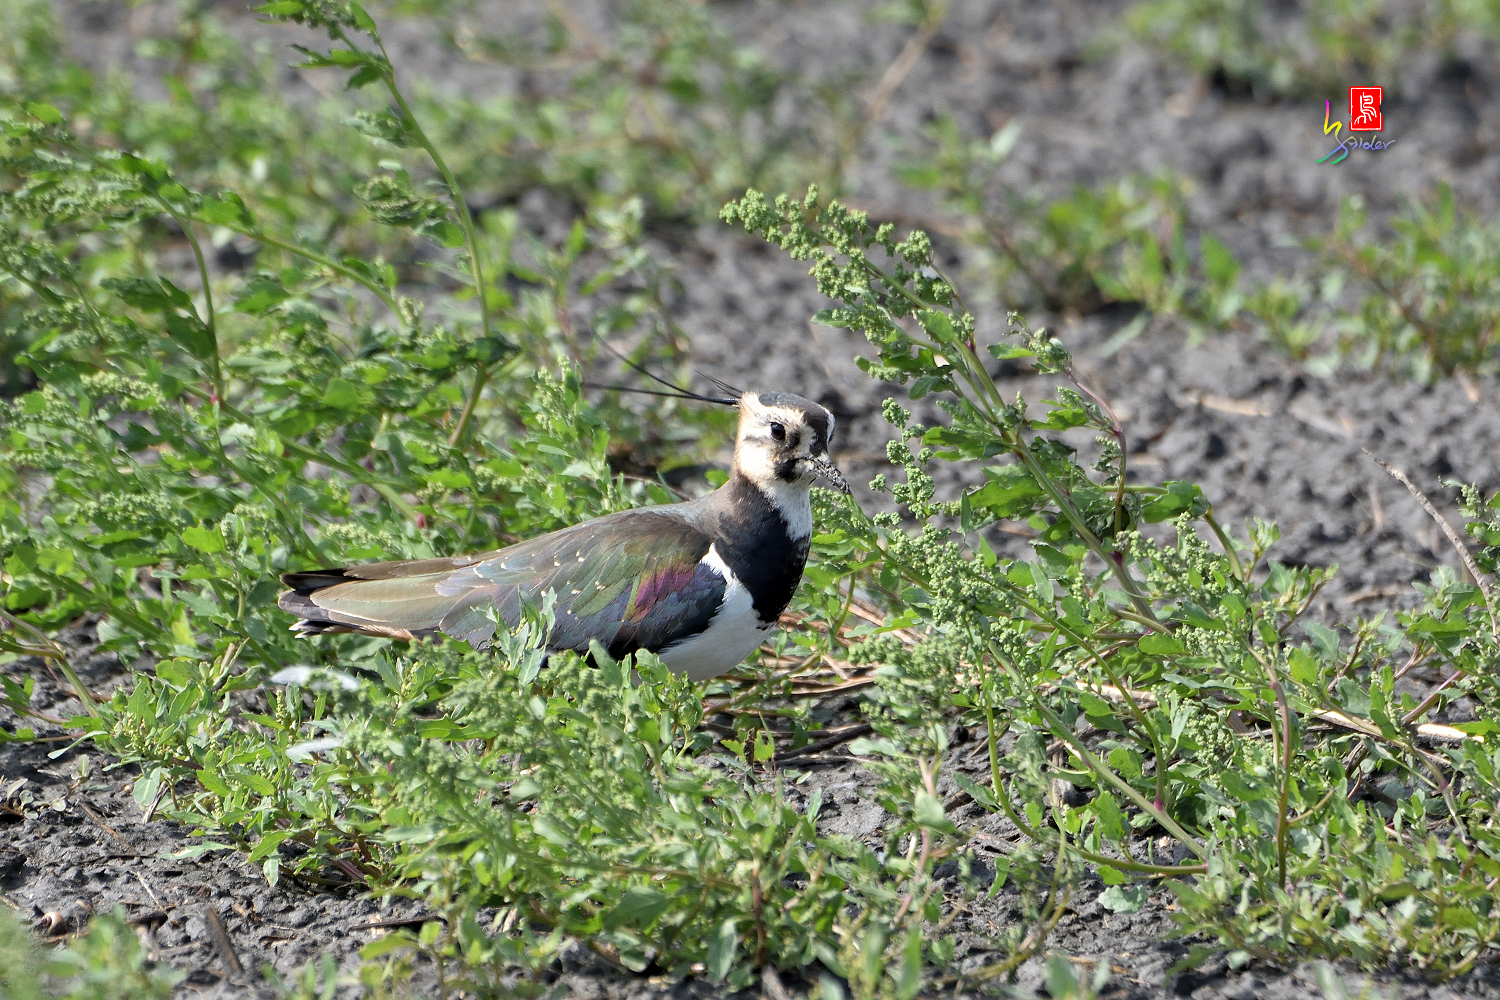 Nprthern_Lapwing_7192